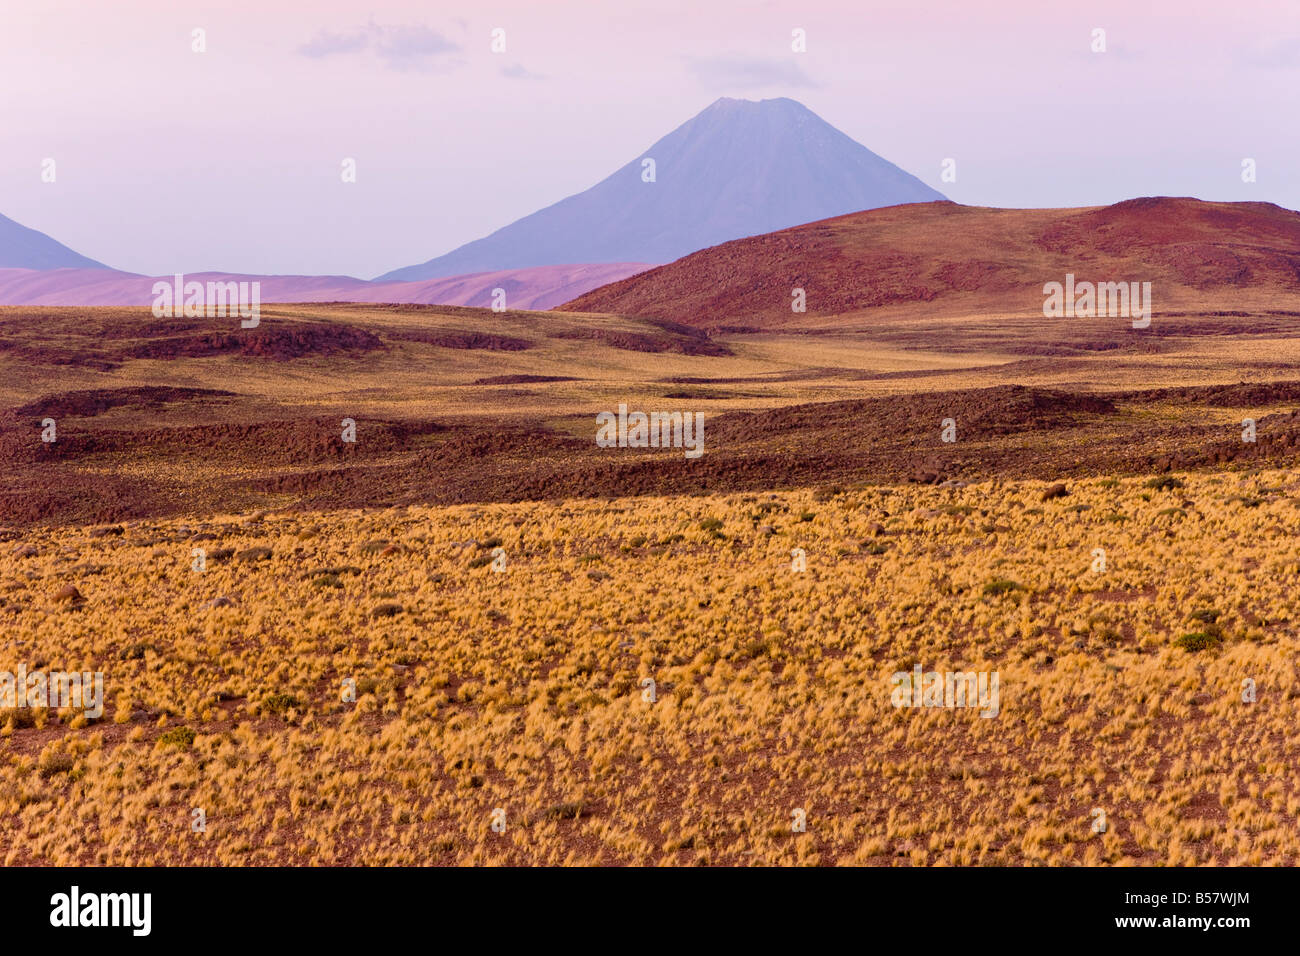 The altiplano, Los Flamencos National Reserve, Atacama Desert, Antofagasta Region, Norte Grande, Chile - Stock Image